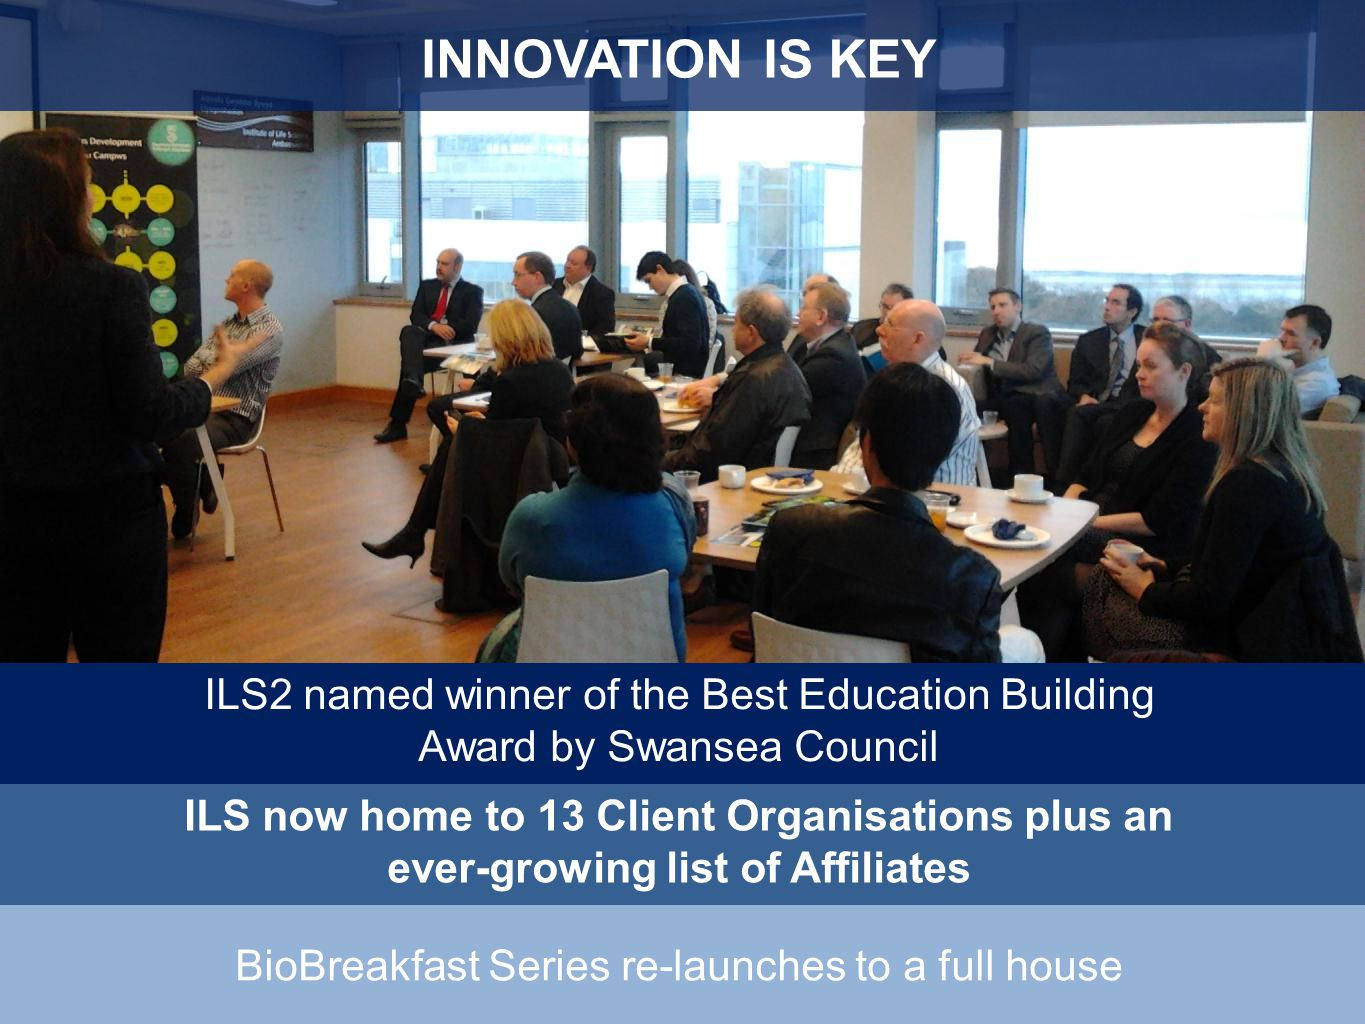 INNOVATION IS KEY ILS now home to 13 Client Organisations plus an ever-growing list of Affiliates BioBreakfast Series re-launches to a full house ILS2